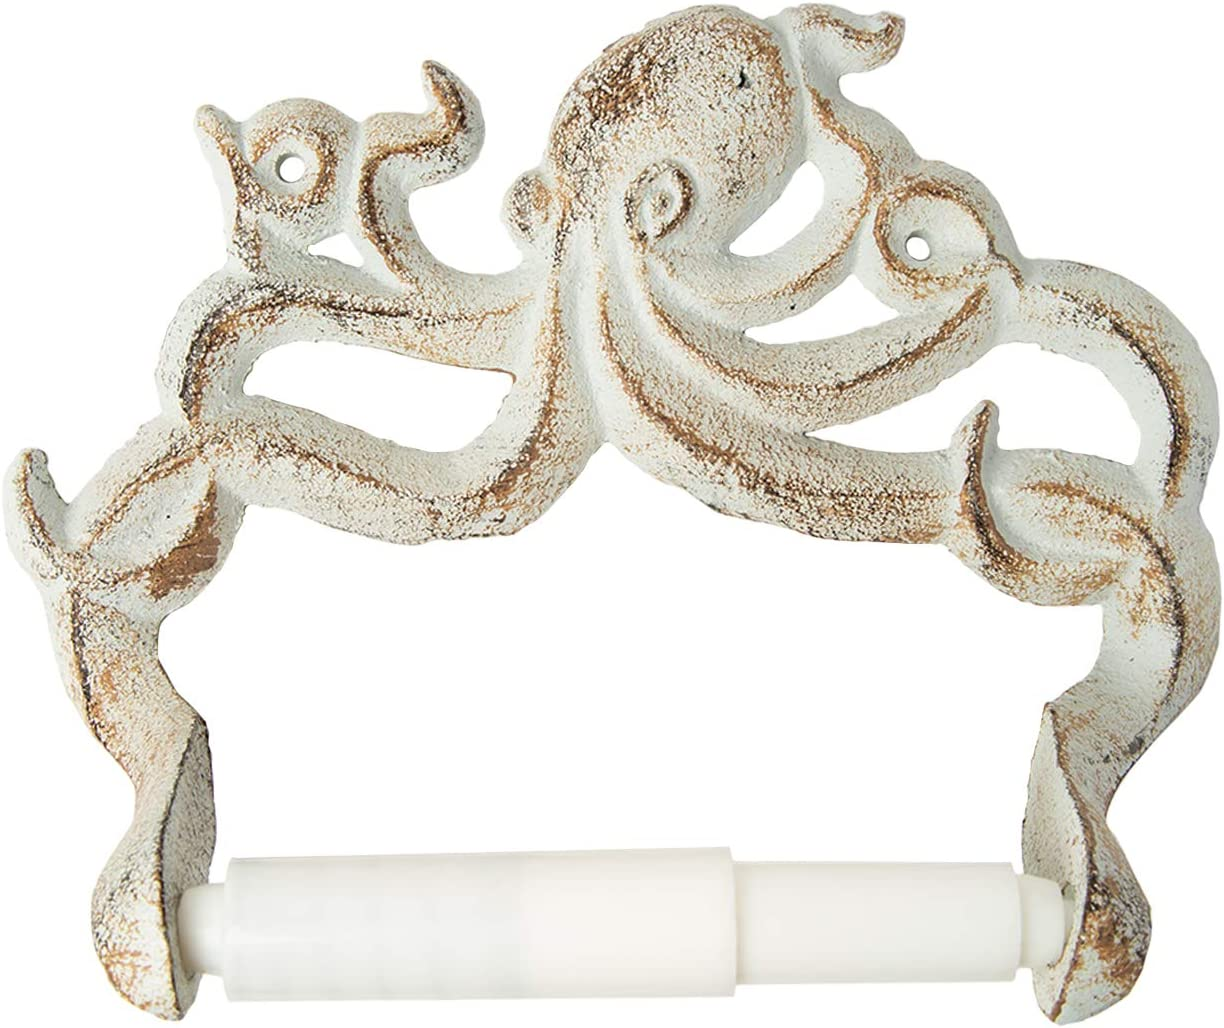 Decorative Cast Iron Octopus Toilet Paper Roll Holder